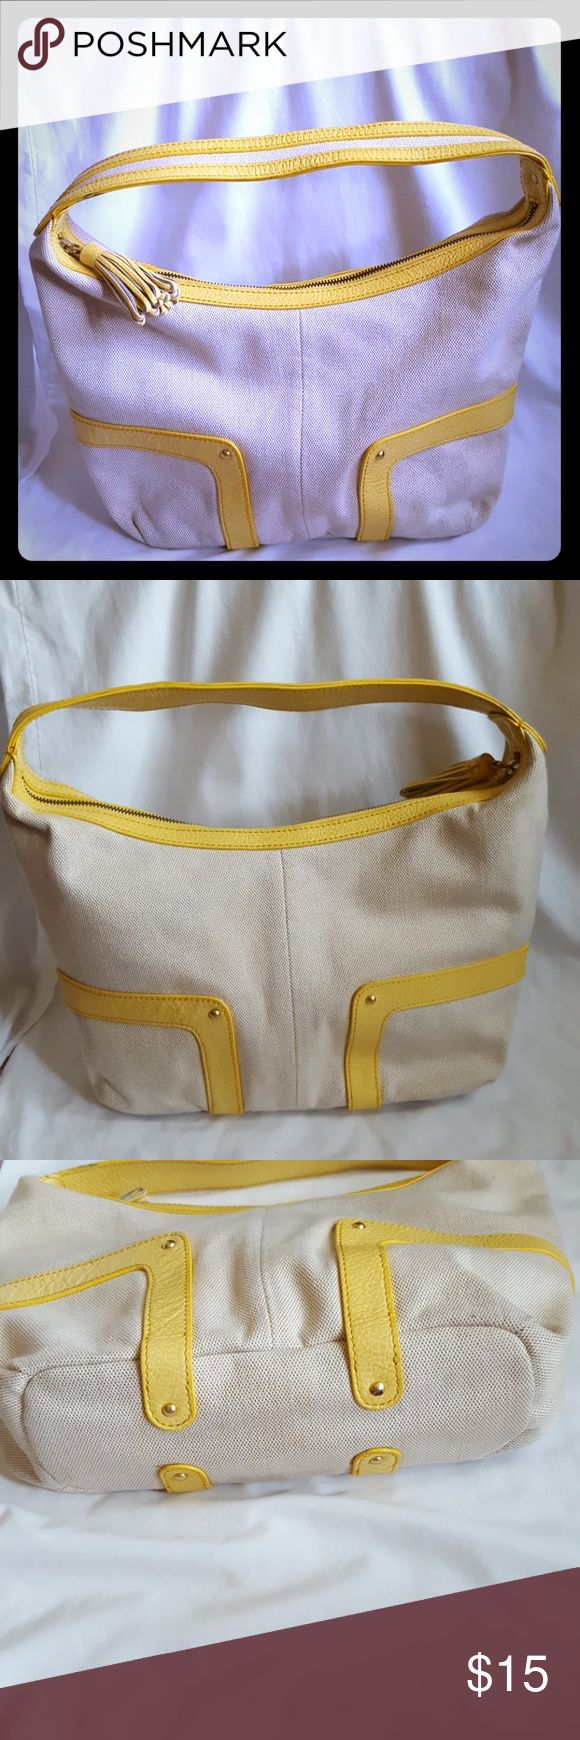 "Forth & Towne (The Gap) Canvas Bag w/ Yellow Trim Forth & Towne (a Gap company) heavy duty canvas bag with yellow trim and tassel. Bag measures 15"" wide x 9"" tall x 4"" sides at the base. Handle adds 5"" to drop. Zip top closure with 1 interior zip pocket and 2 accessory pouches.  Excellent used condition. Smoke free and pet free home. Forth & Towne Bags Hobos"